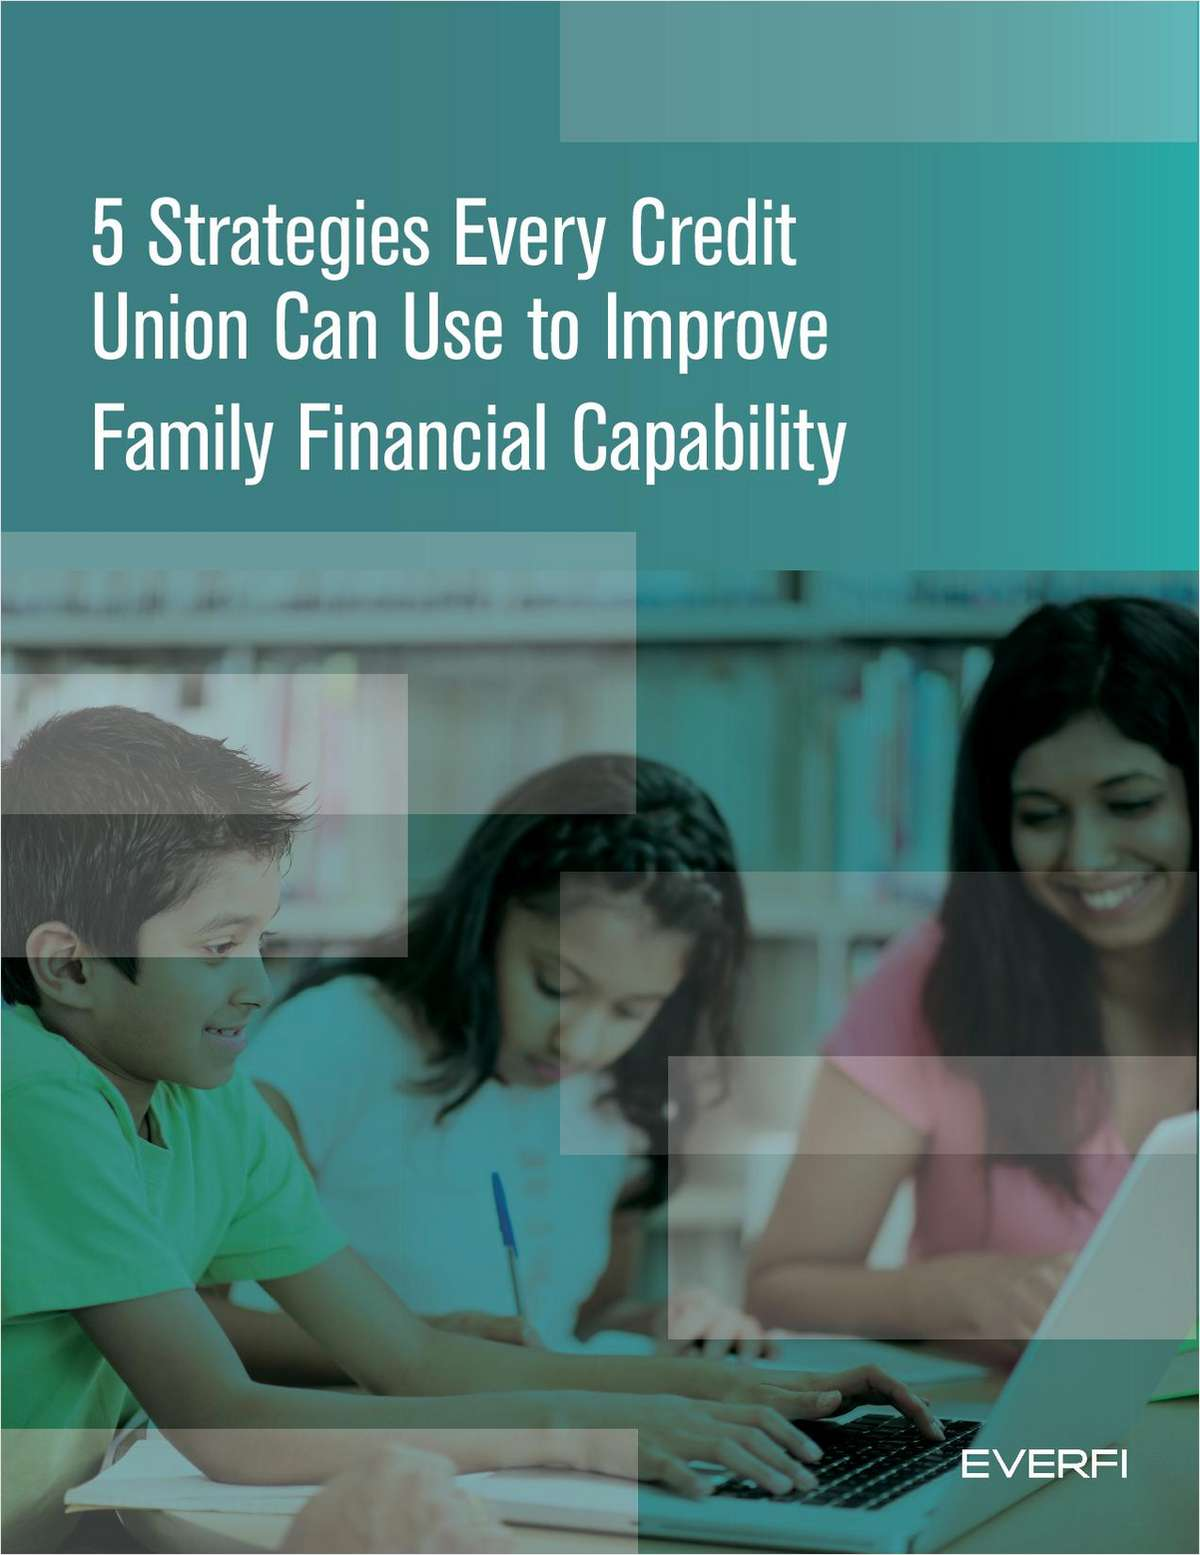 5 Strategies Every Credit Union Can Use to Improve Family Financial Capability